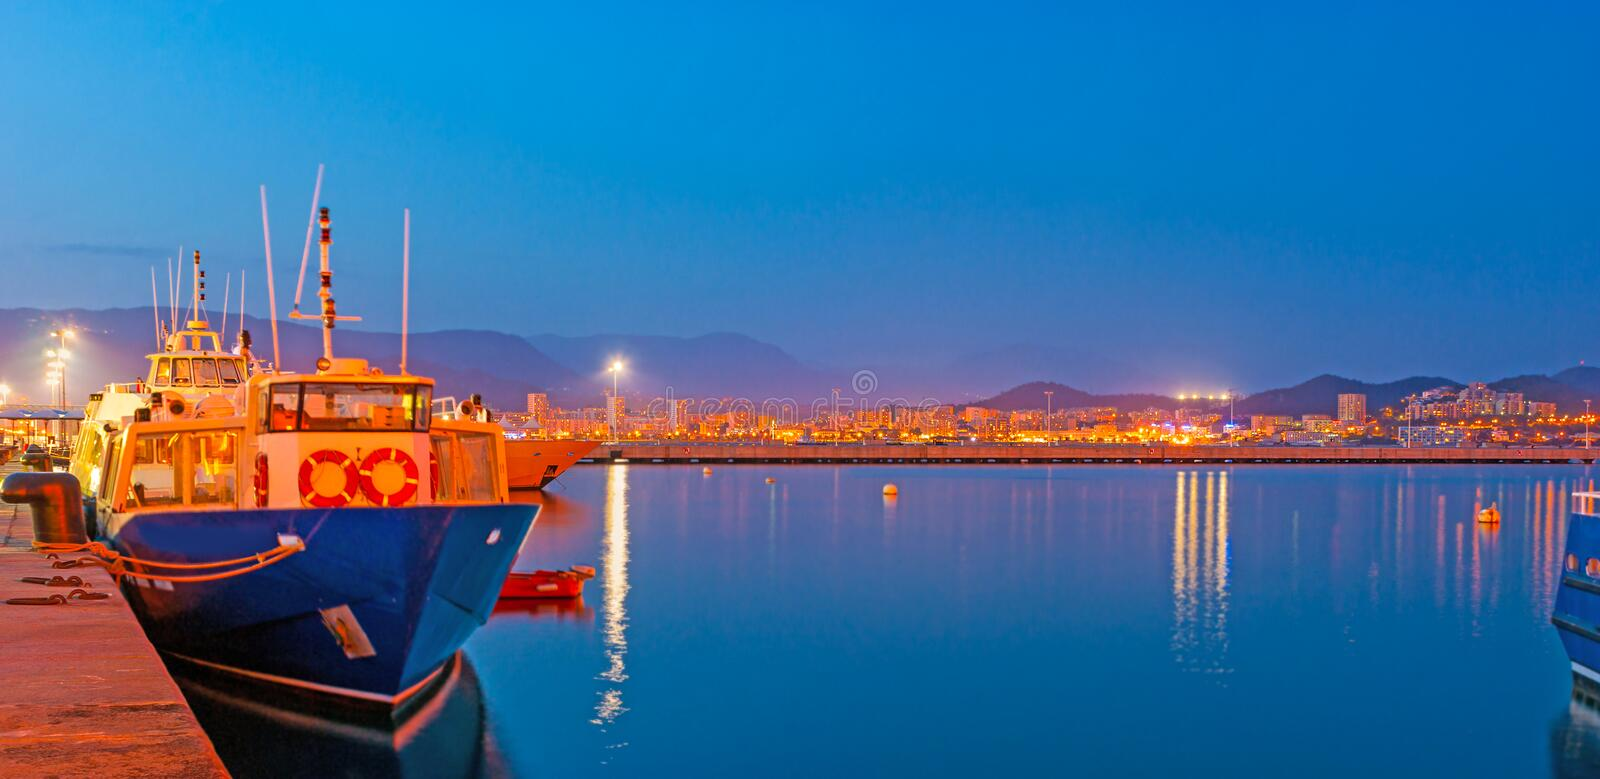 Evening in port of Ajaccio. The bright city lights reflect in calm waters in port of Ajaccio, Corsica, France stock image